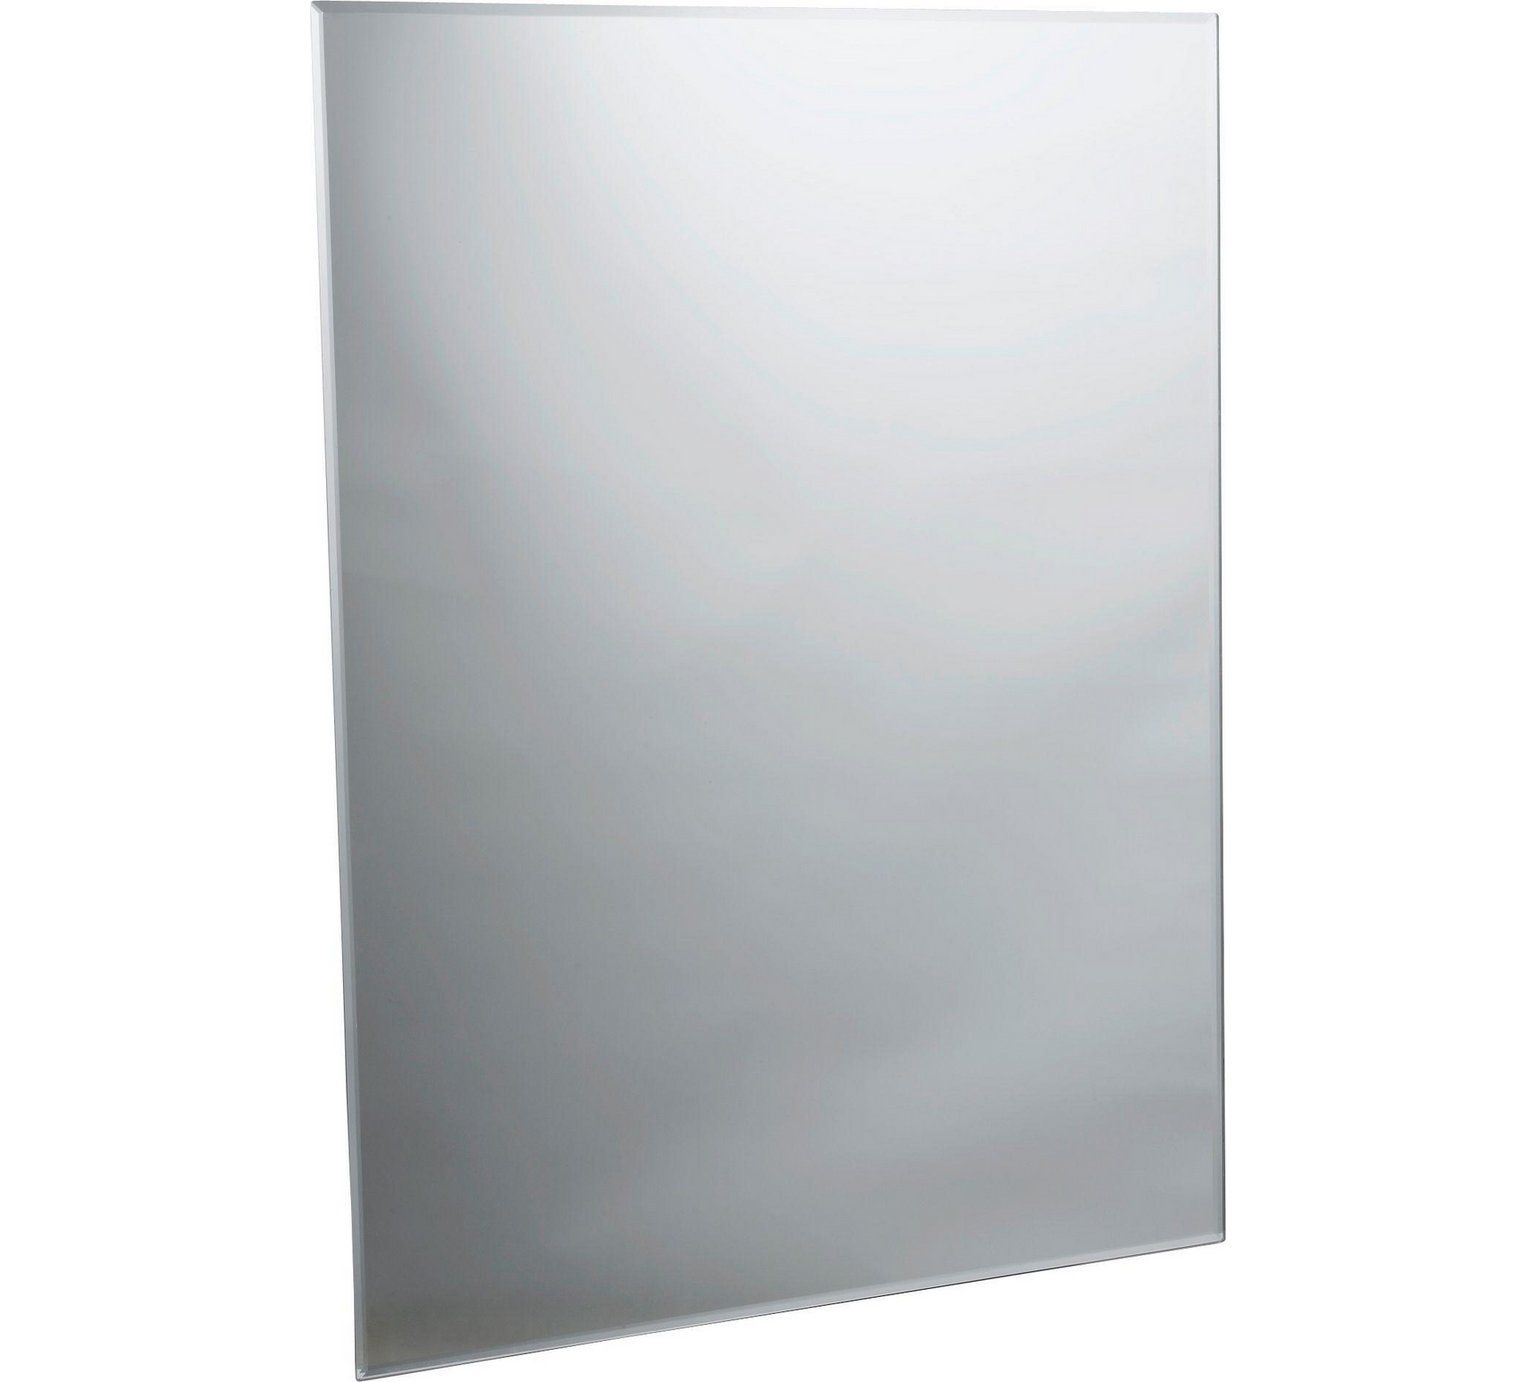 Home Rectangular Bevelled Bathroom Mirror - Silver | Wall ...